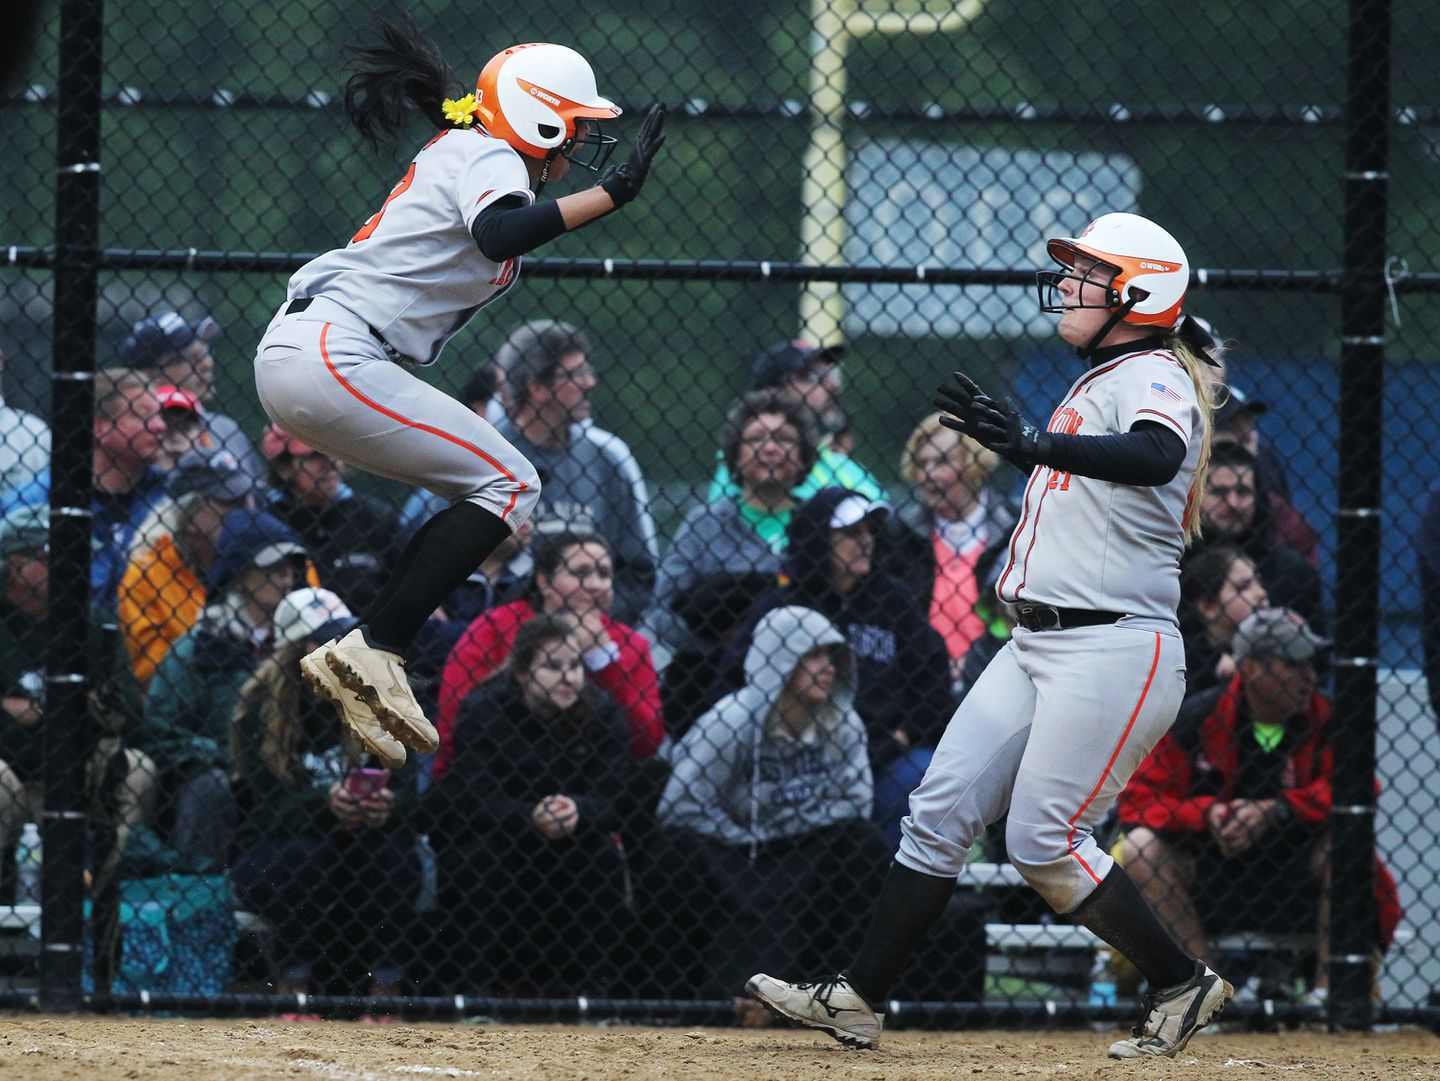 Taunton Softball Wins D1 Title With A Grand Finale The